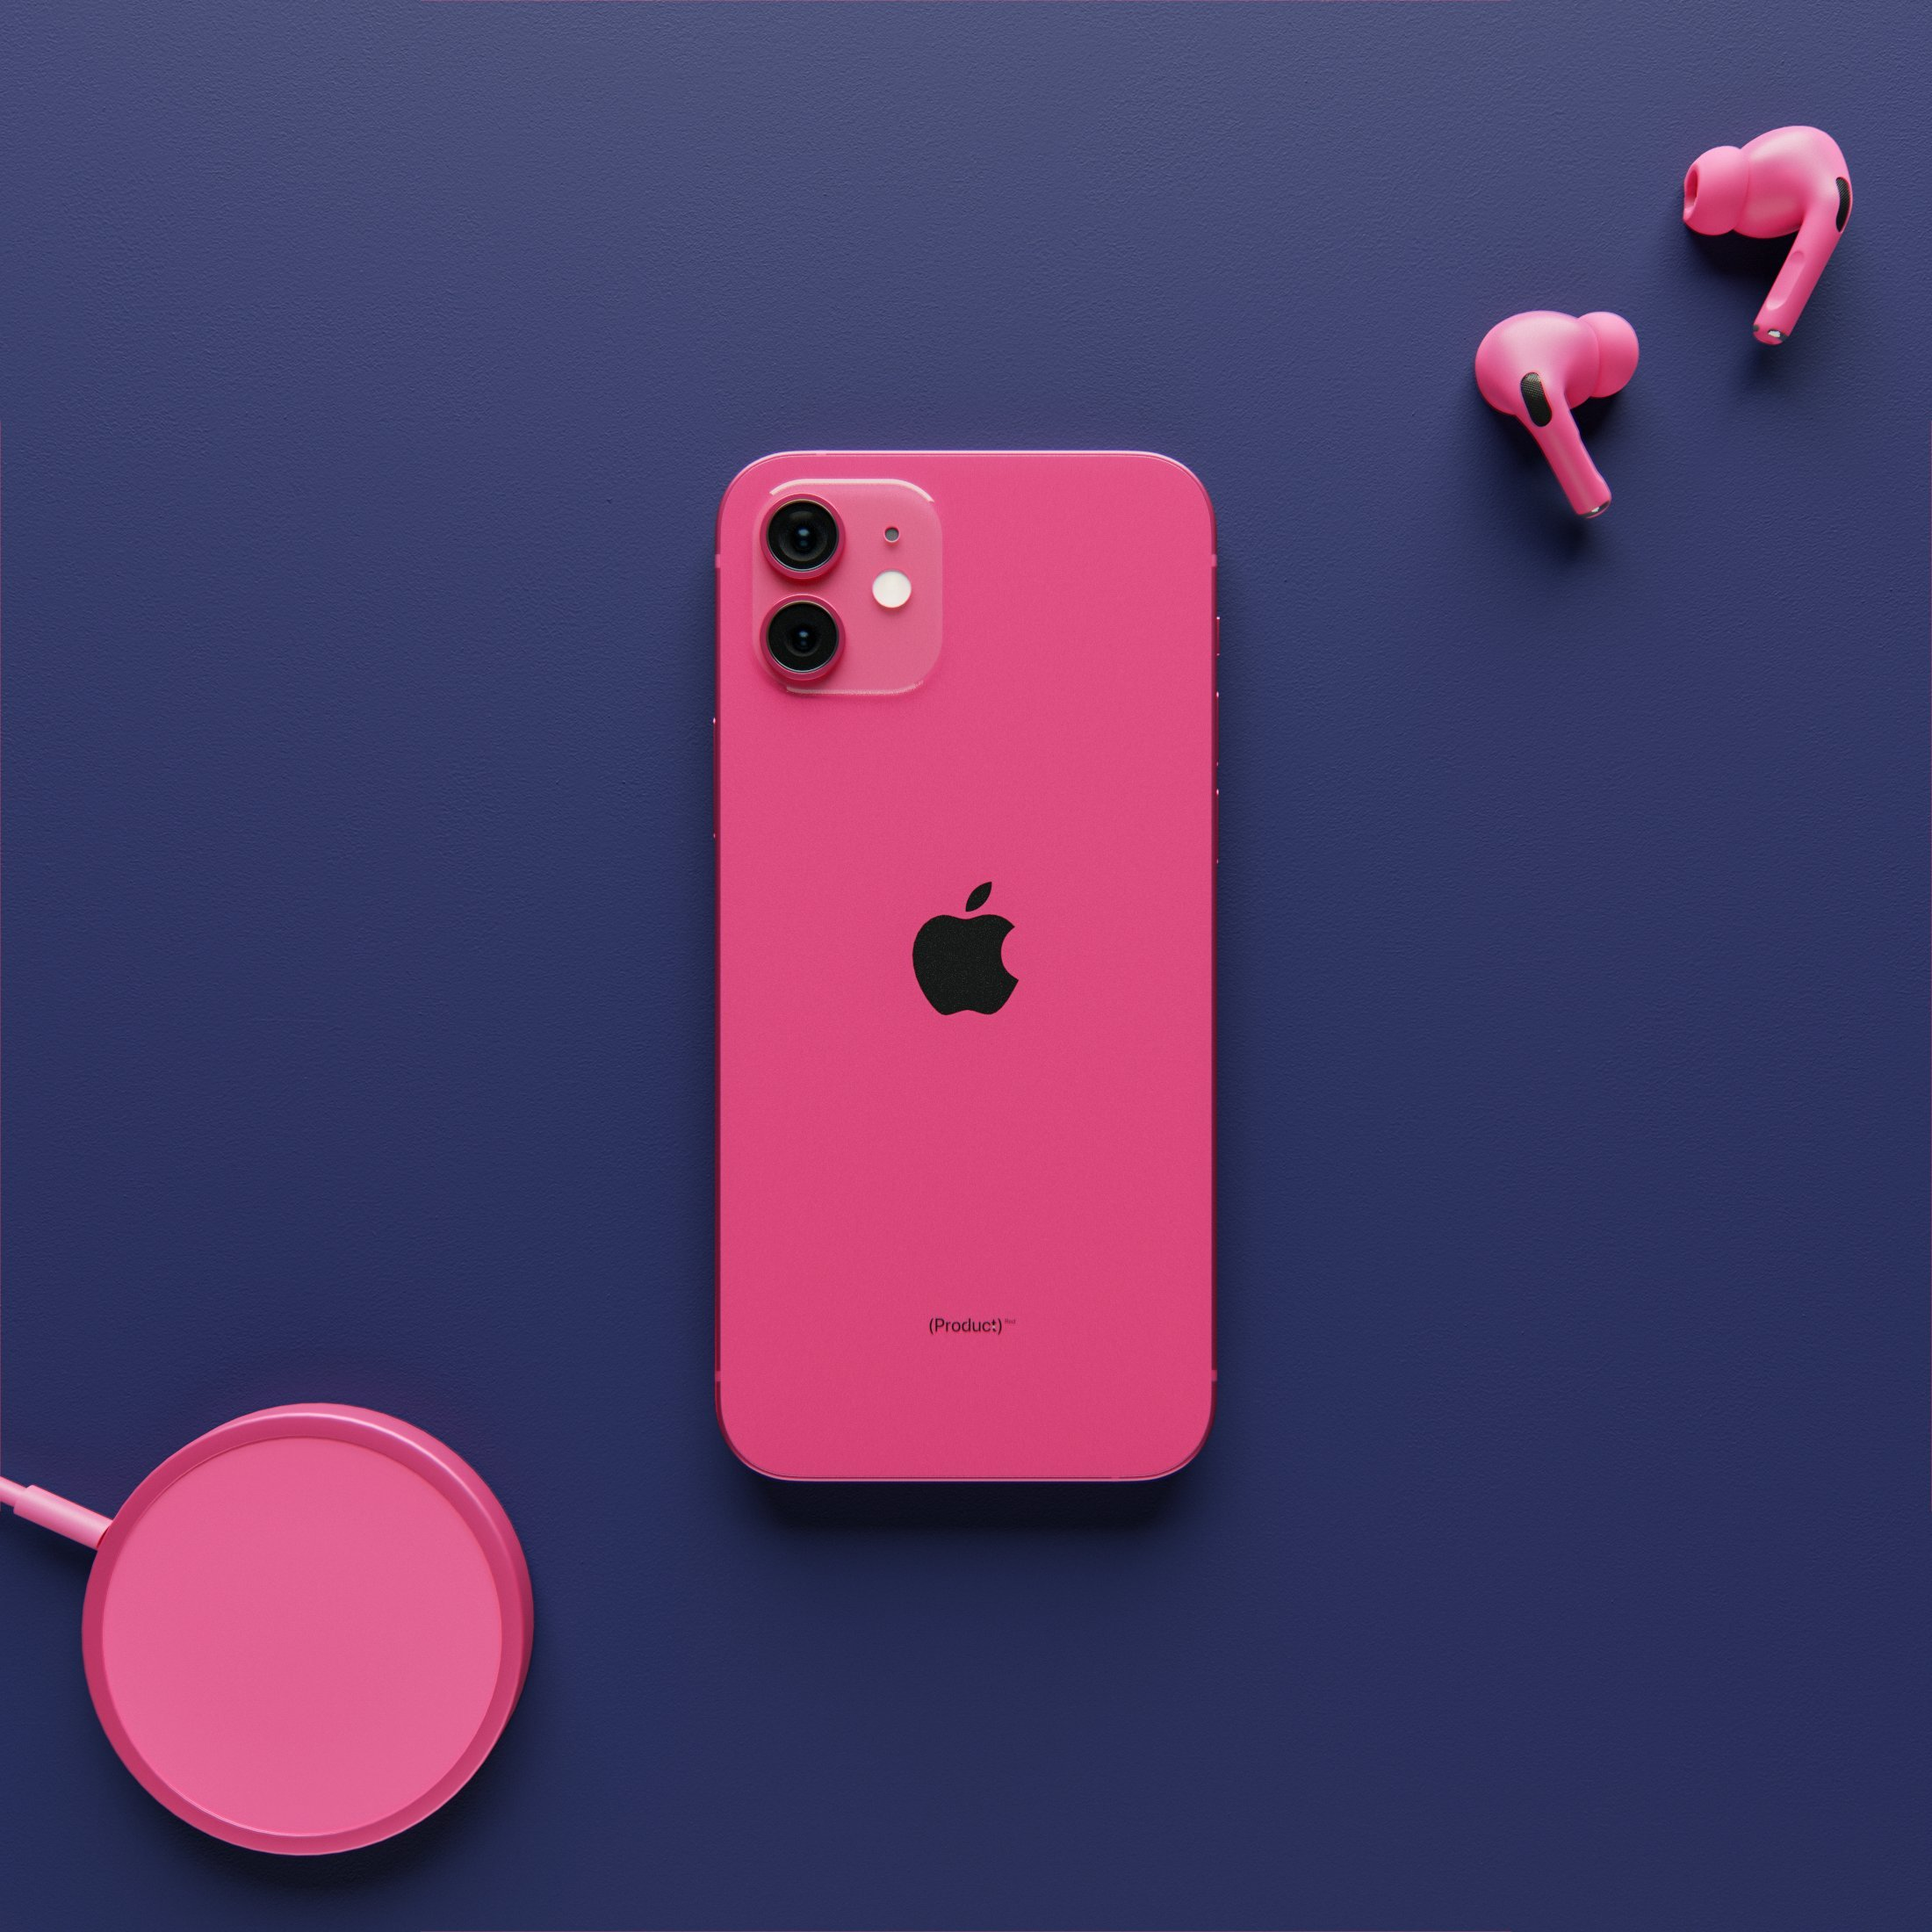 iPhone 13 colors: What rumors says about new the color